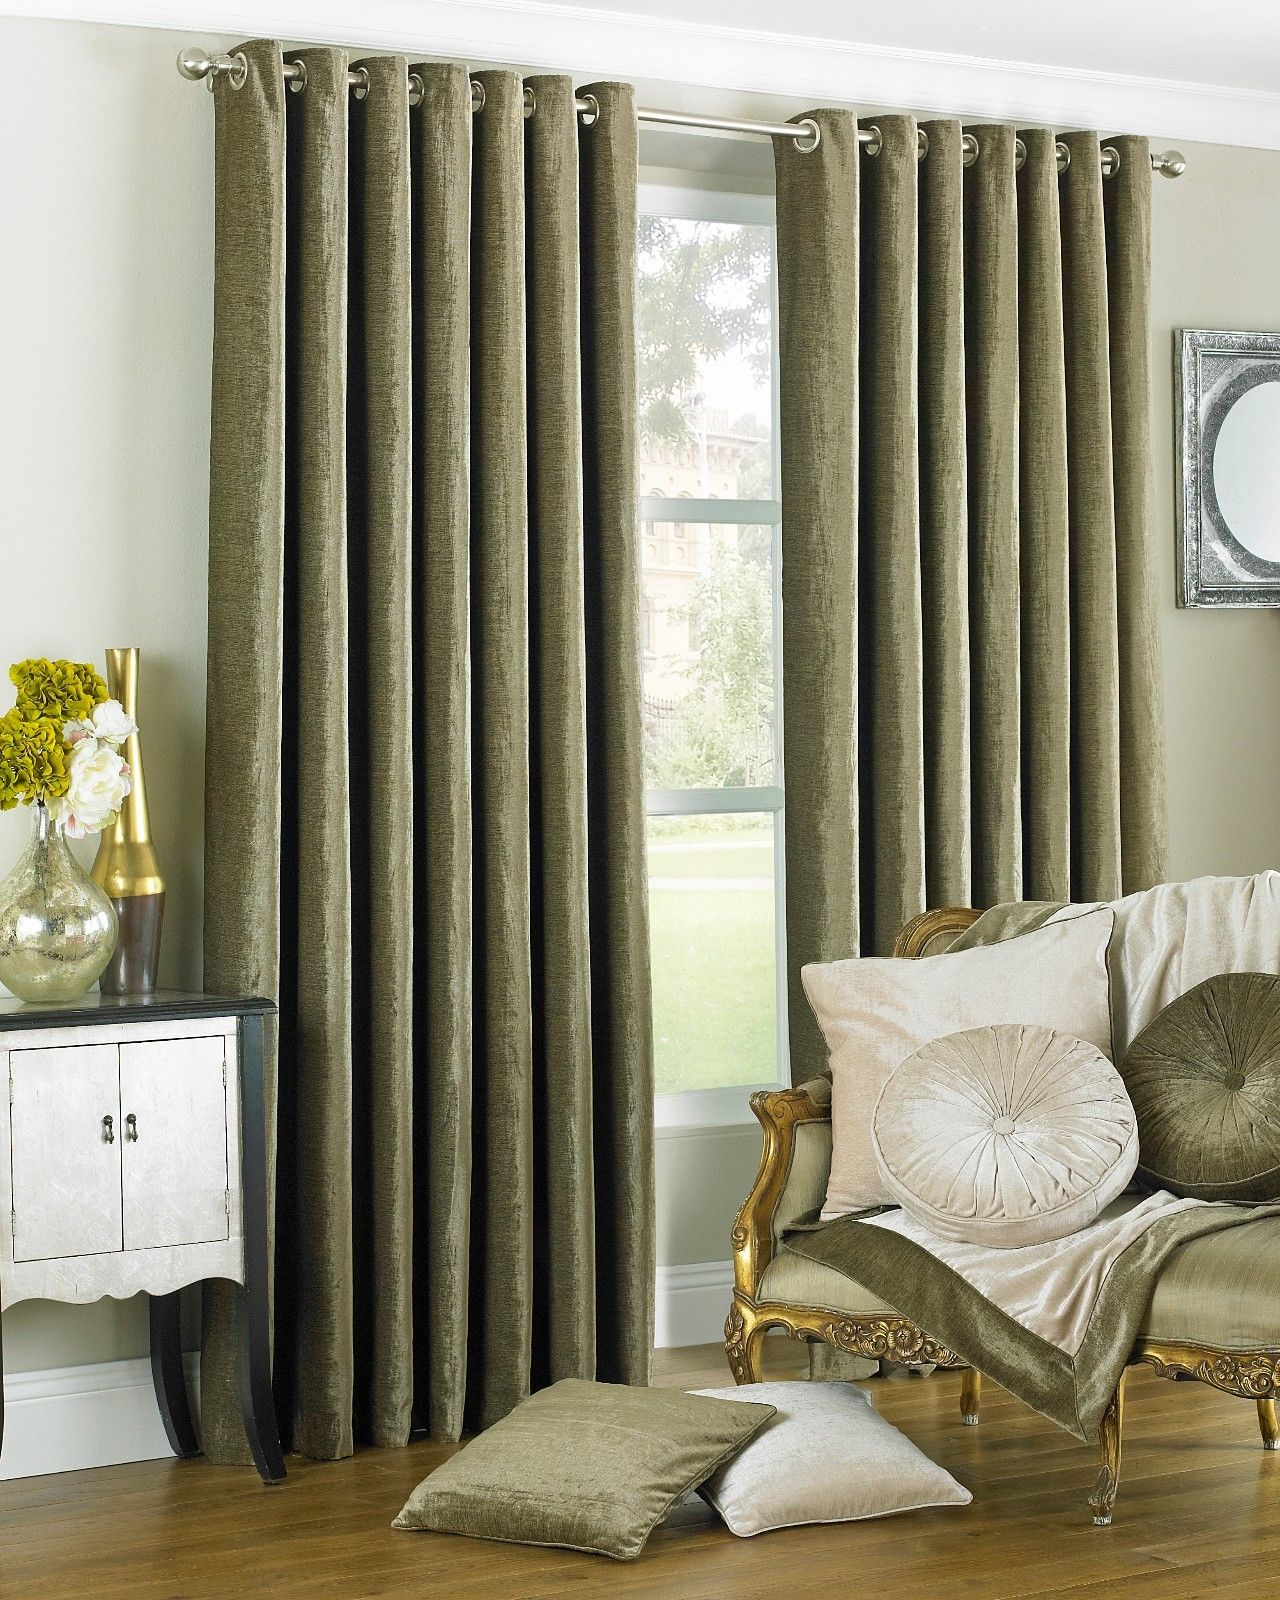 The Home Furnishings Company Wellesley Mocha Faux Curtains and Cushions